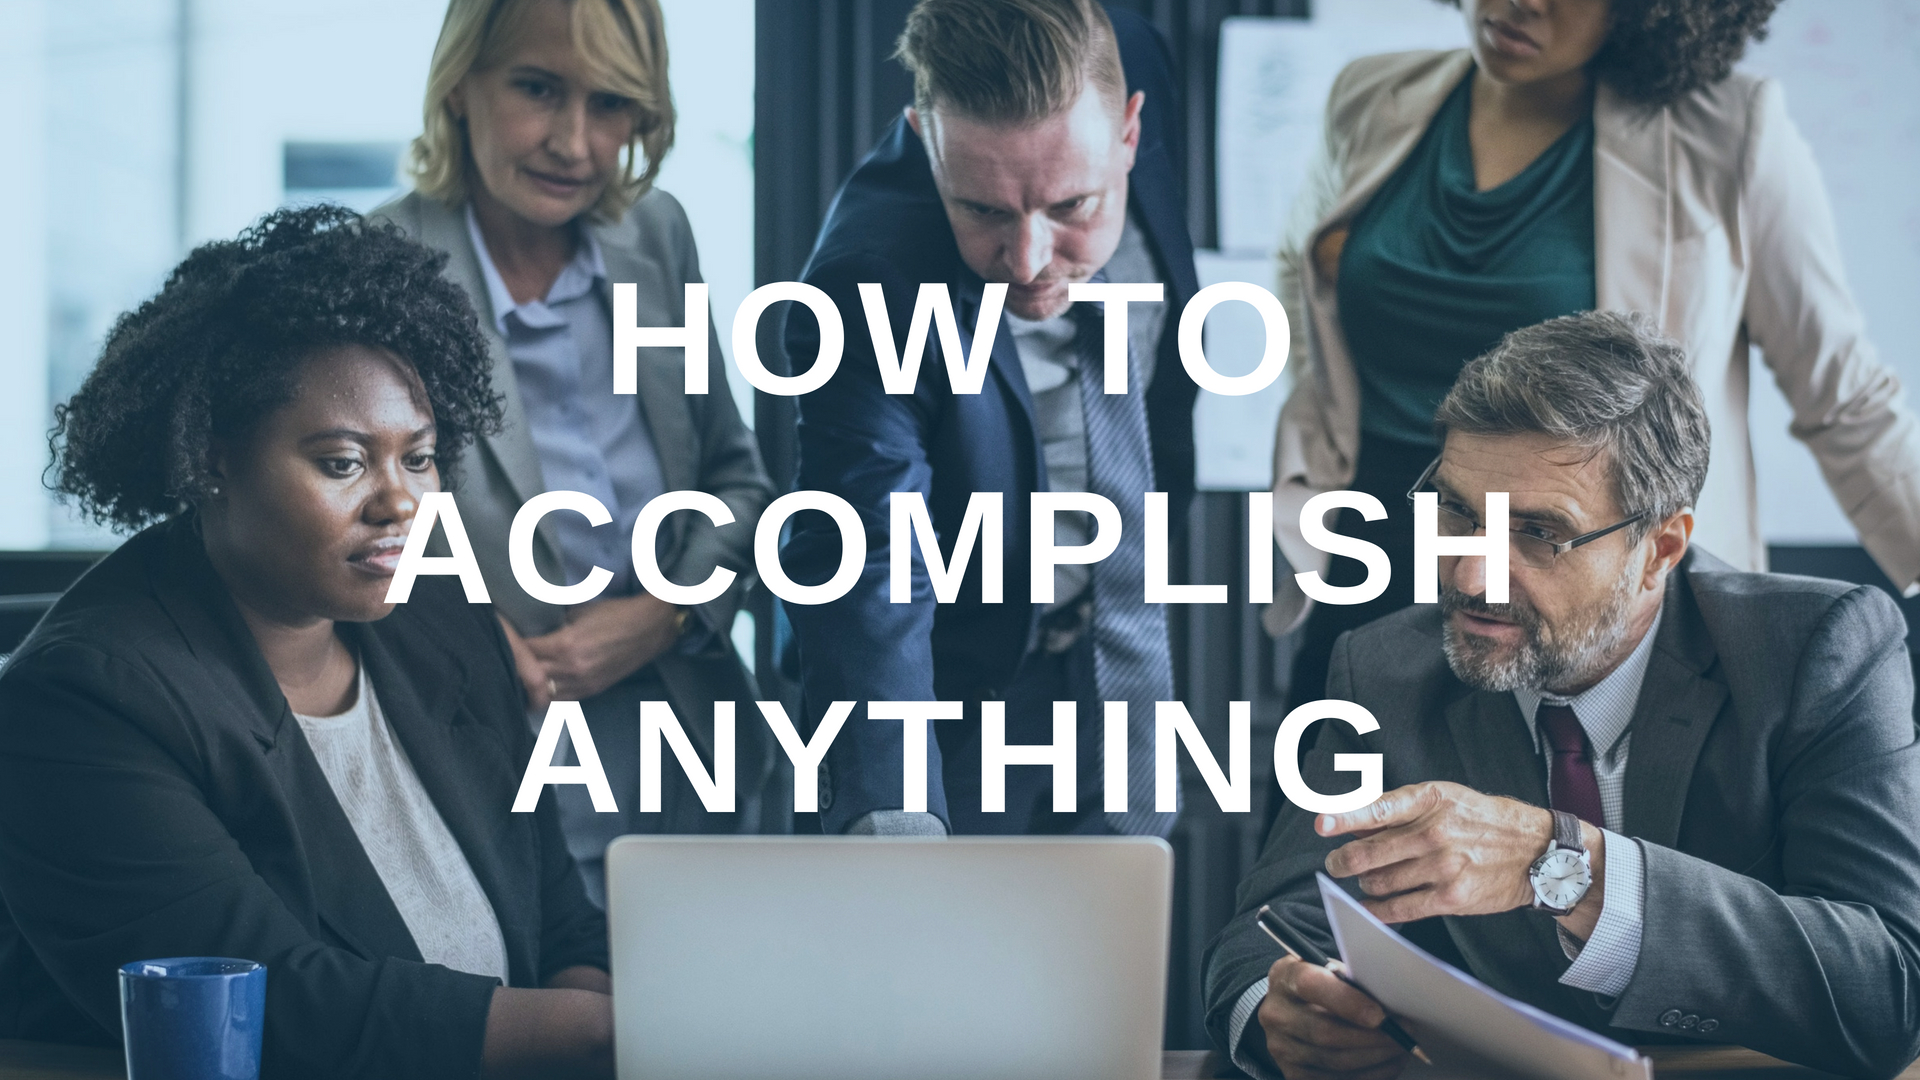 How to Accomplish Anything